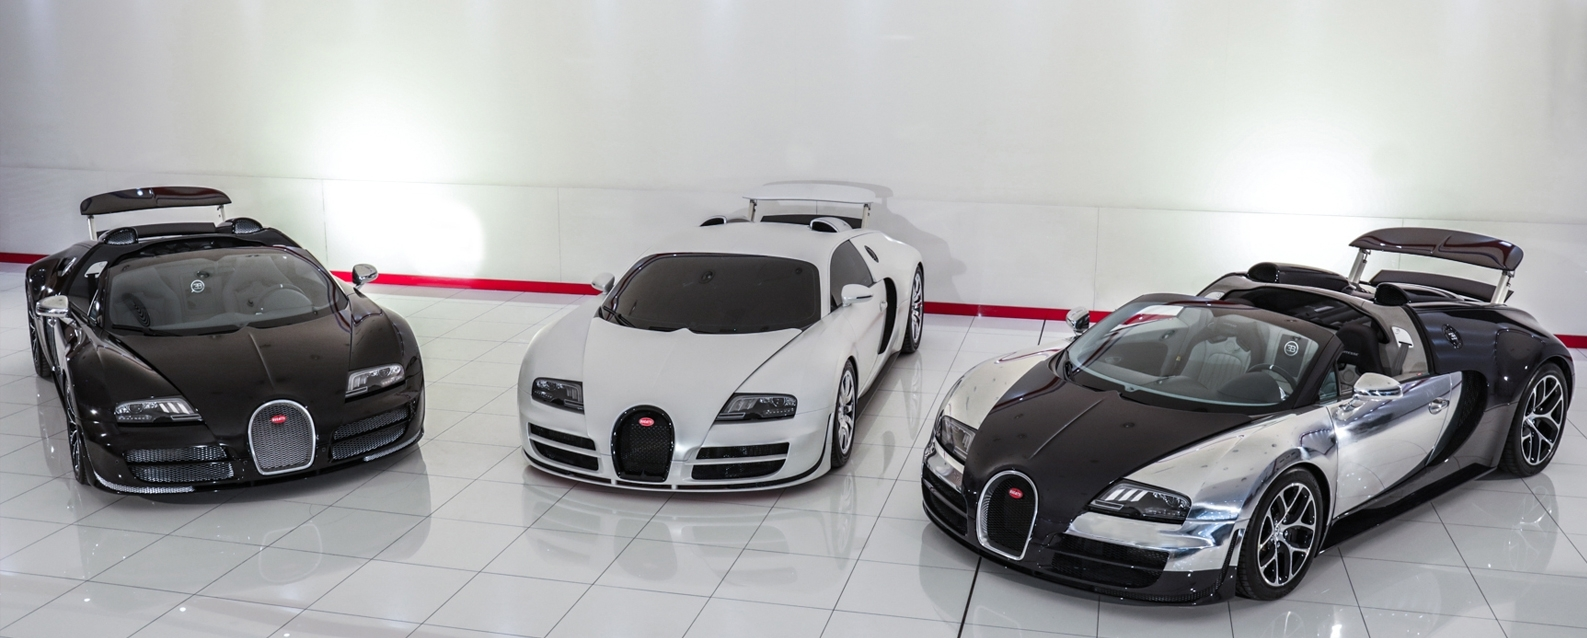 exotic cars dubai - the ultimate name for exotic, luxury and sports